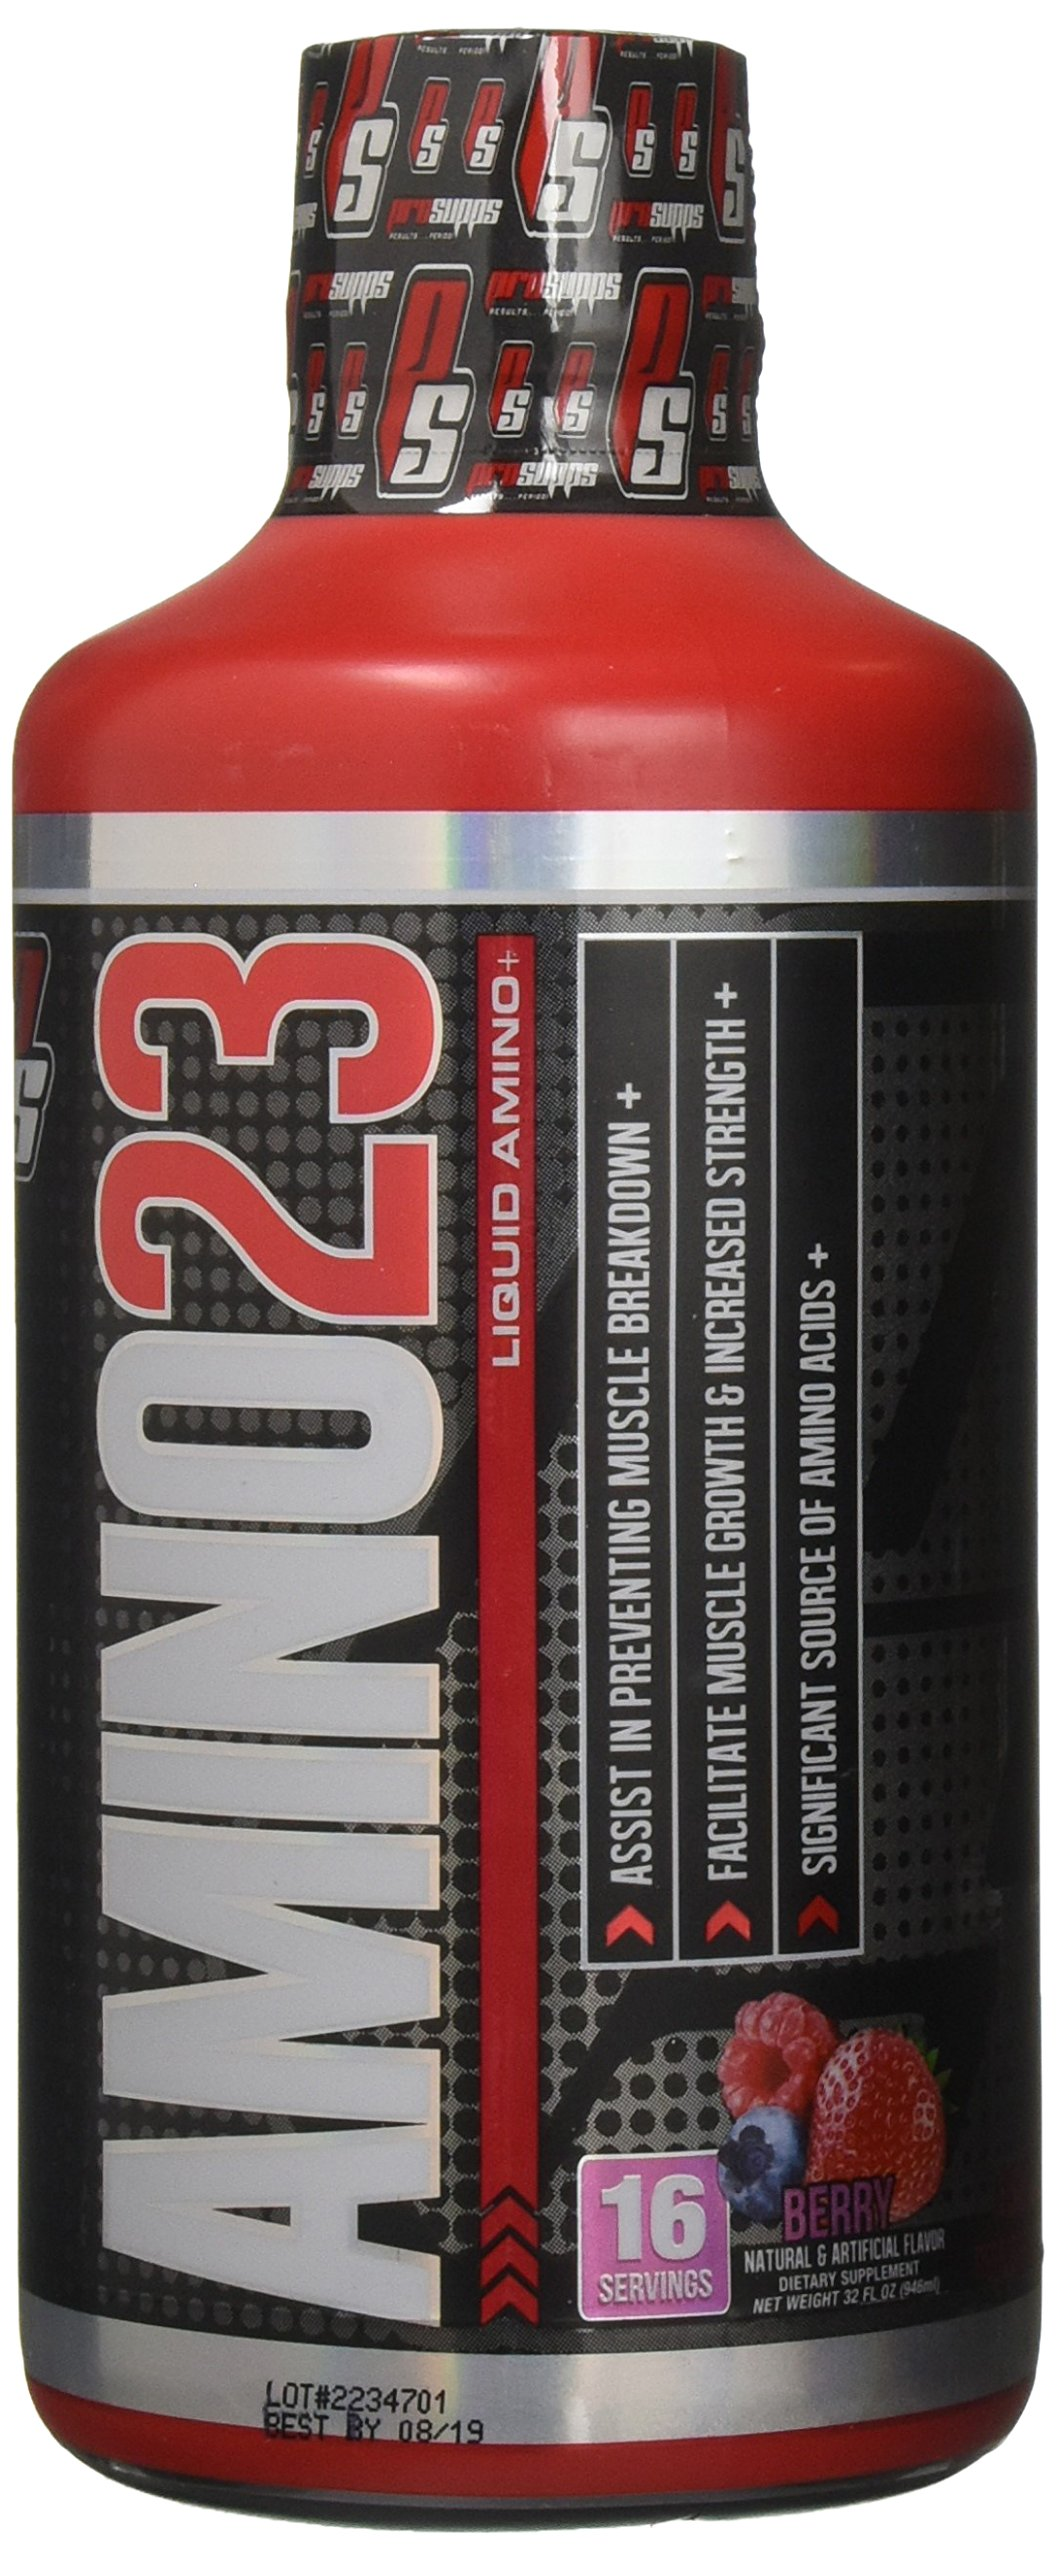 Pro Supps XXIII liquid Amino Diet Supplement, Berry, 32 Fluid Ounce by PROSUPPS